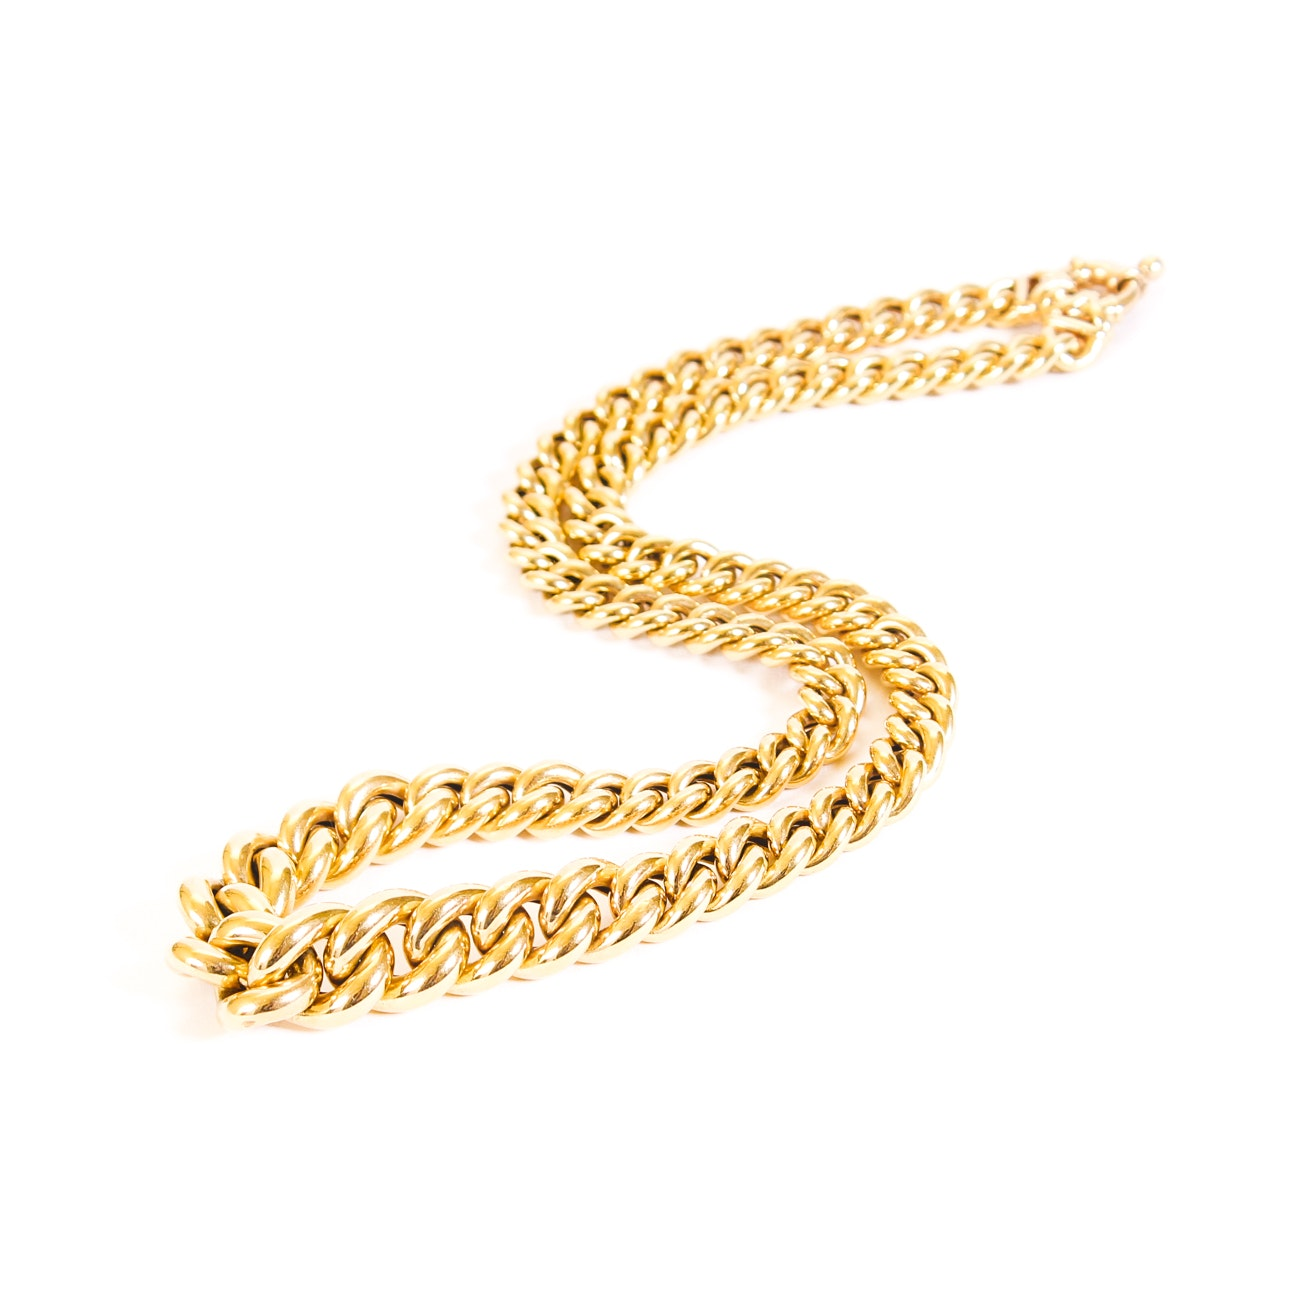 18K Yellow Gold Graduated Curb Chain Necklace